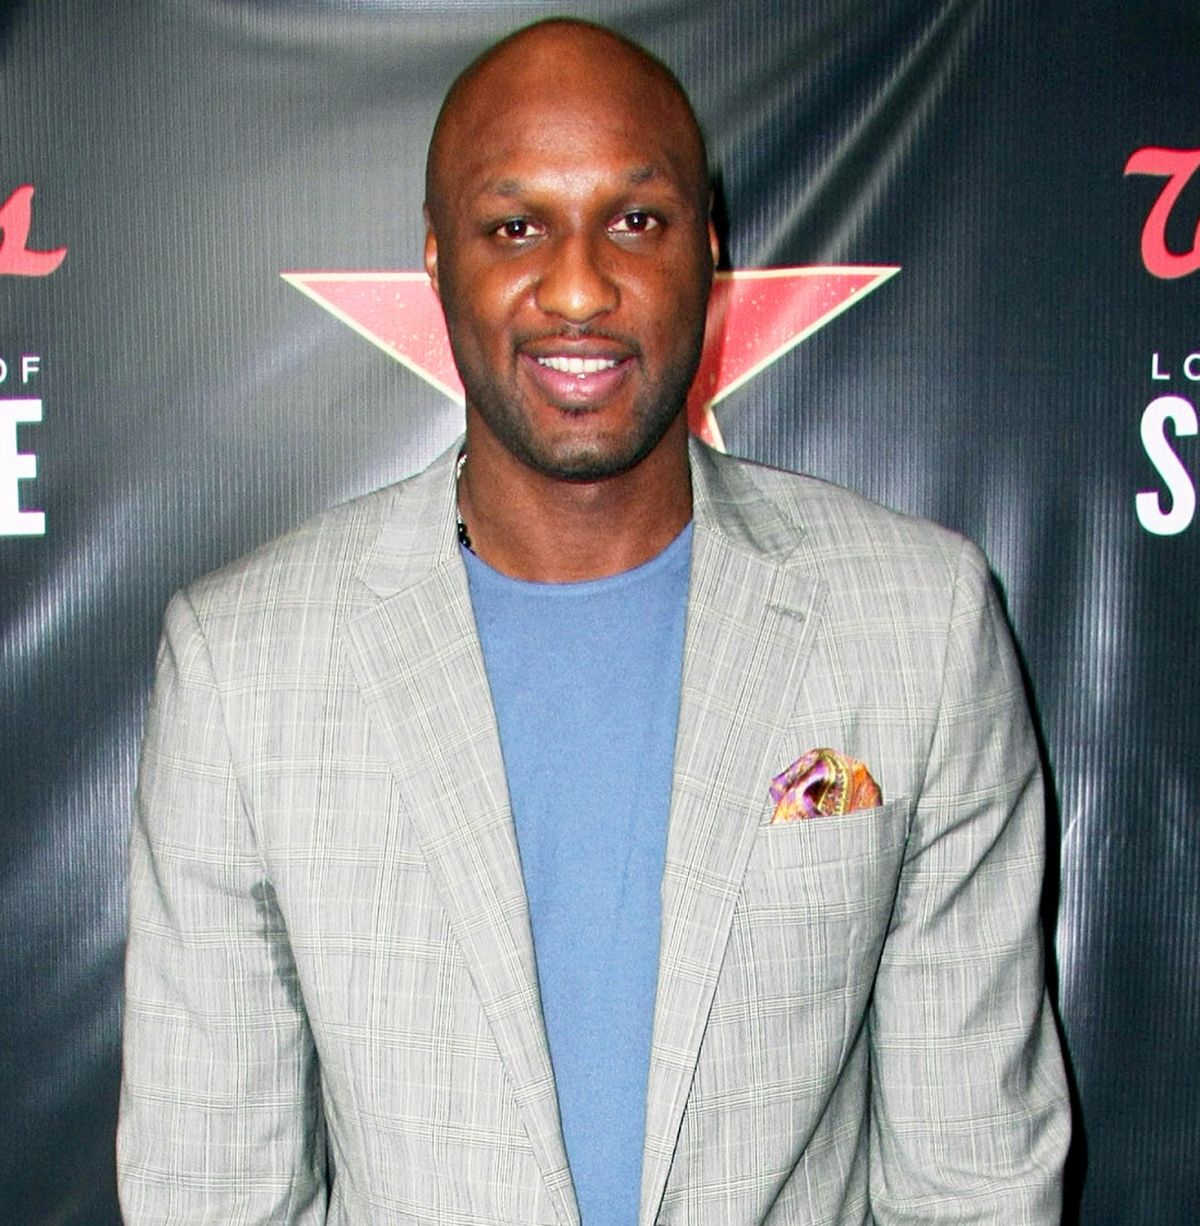 """Lamar Odom Enjoys Five-Hour Meal With Friends, """"Looks Really Good"""""""